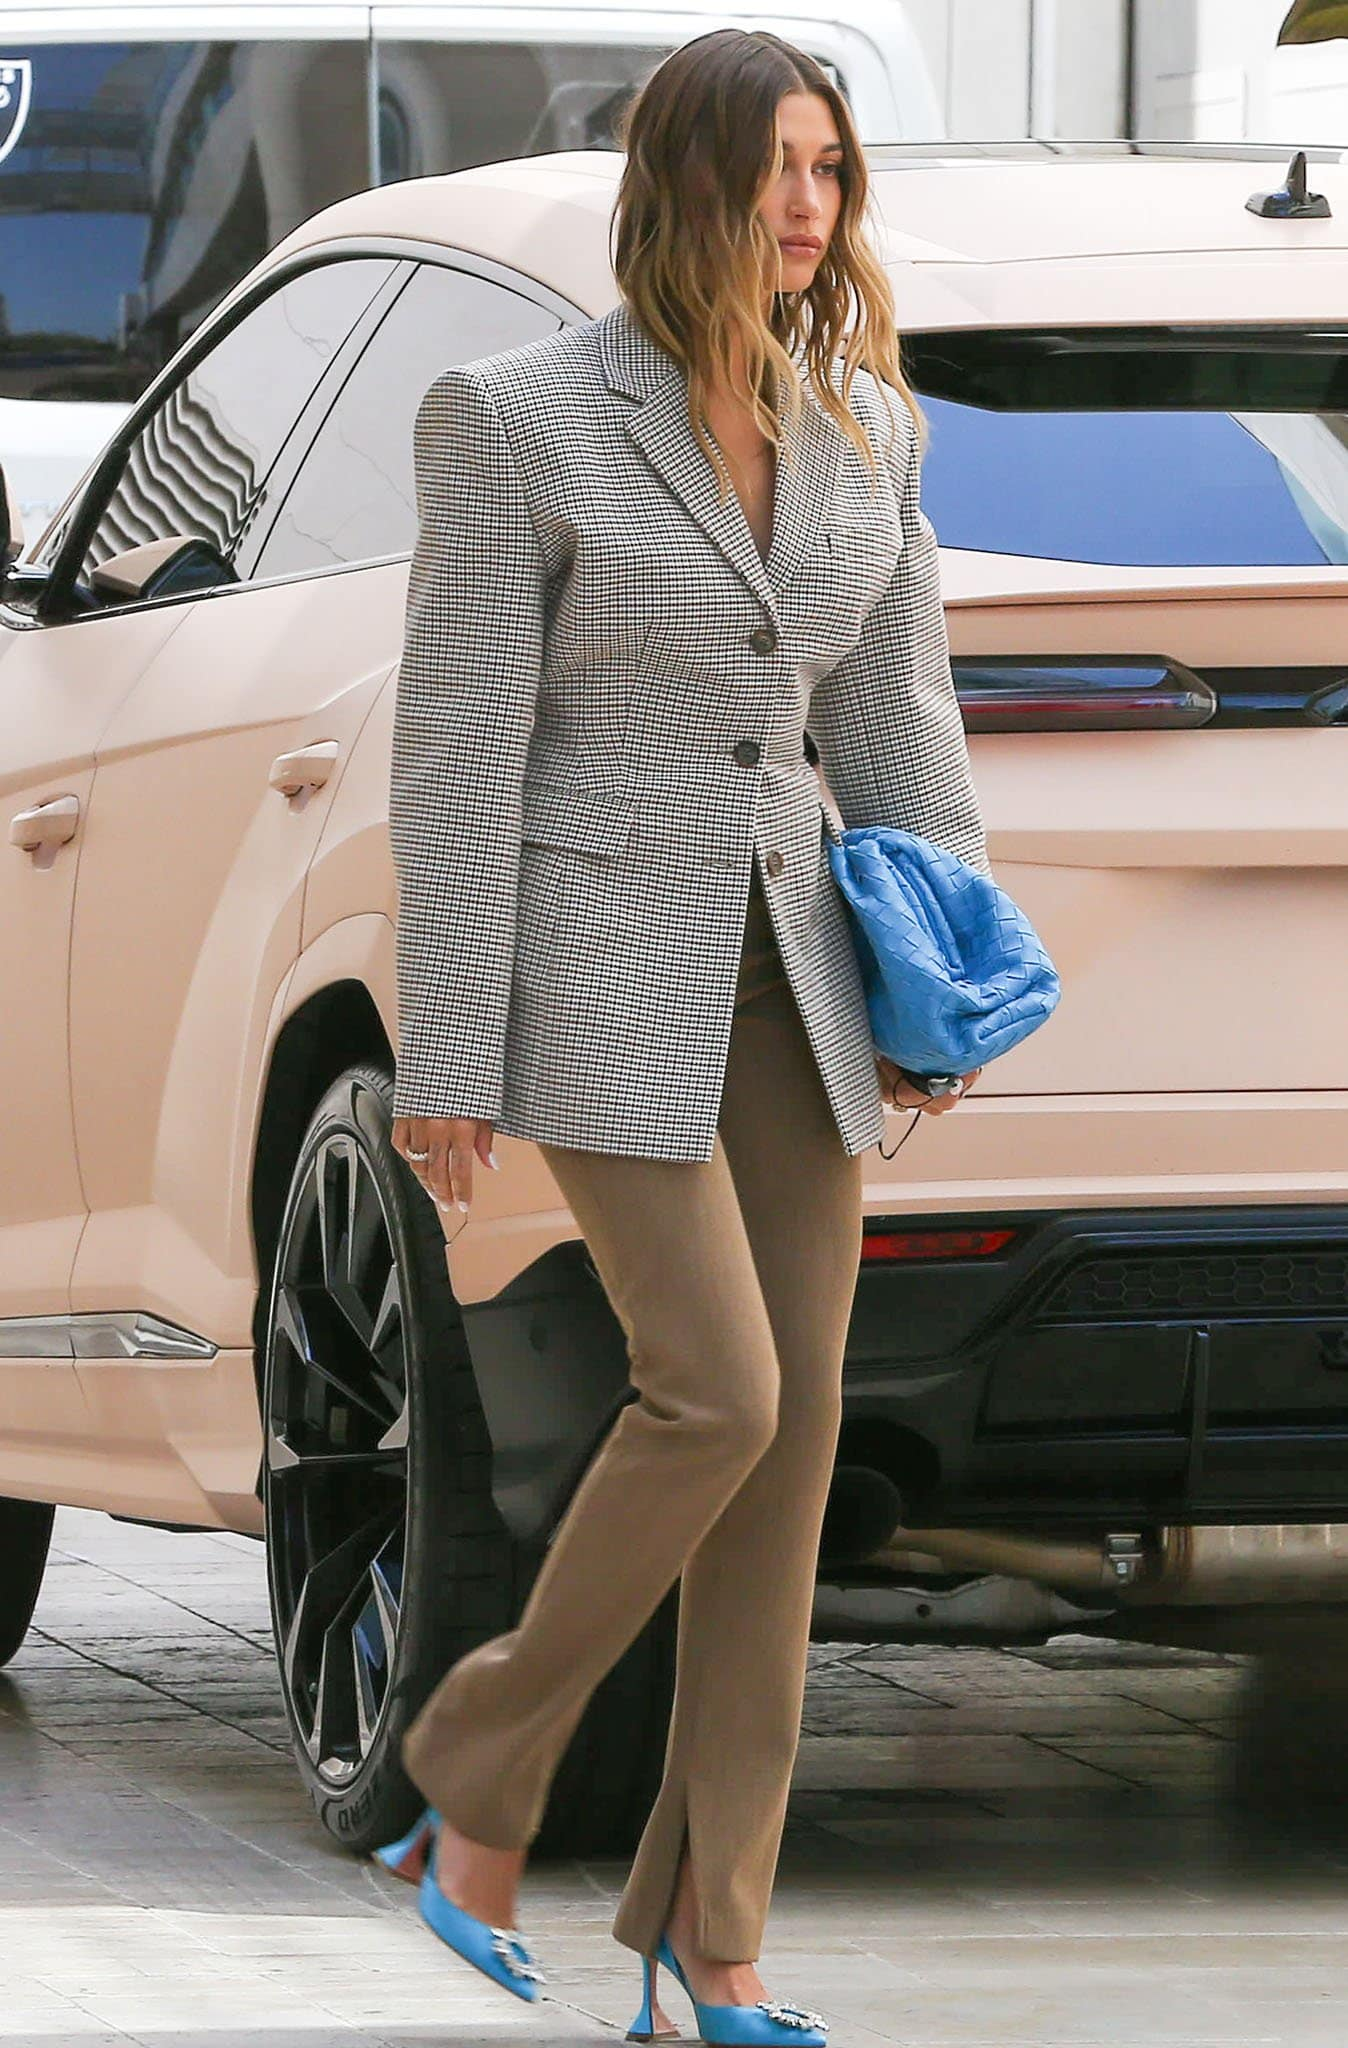 Hailey Bieber leaving a business meeting in Los Angeles on April 20, 2021